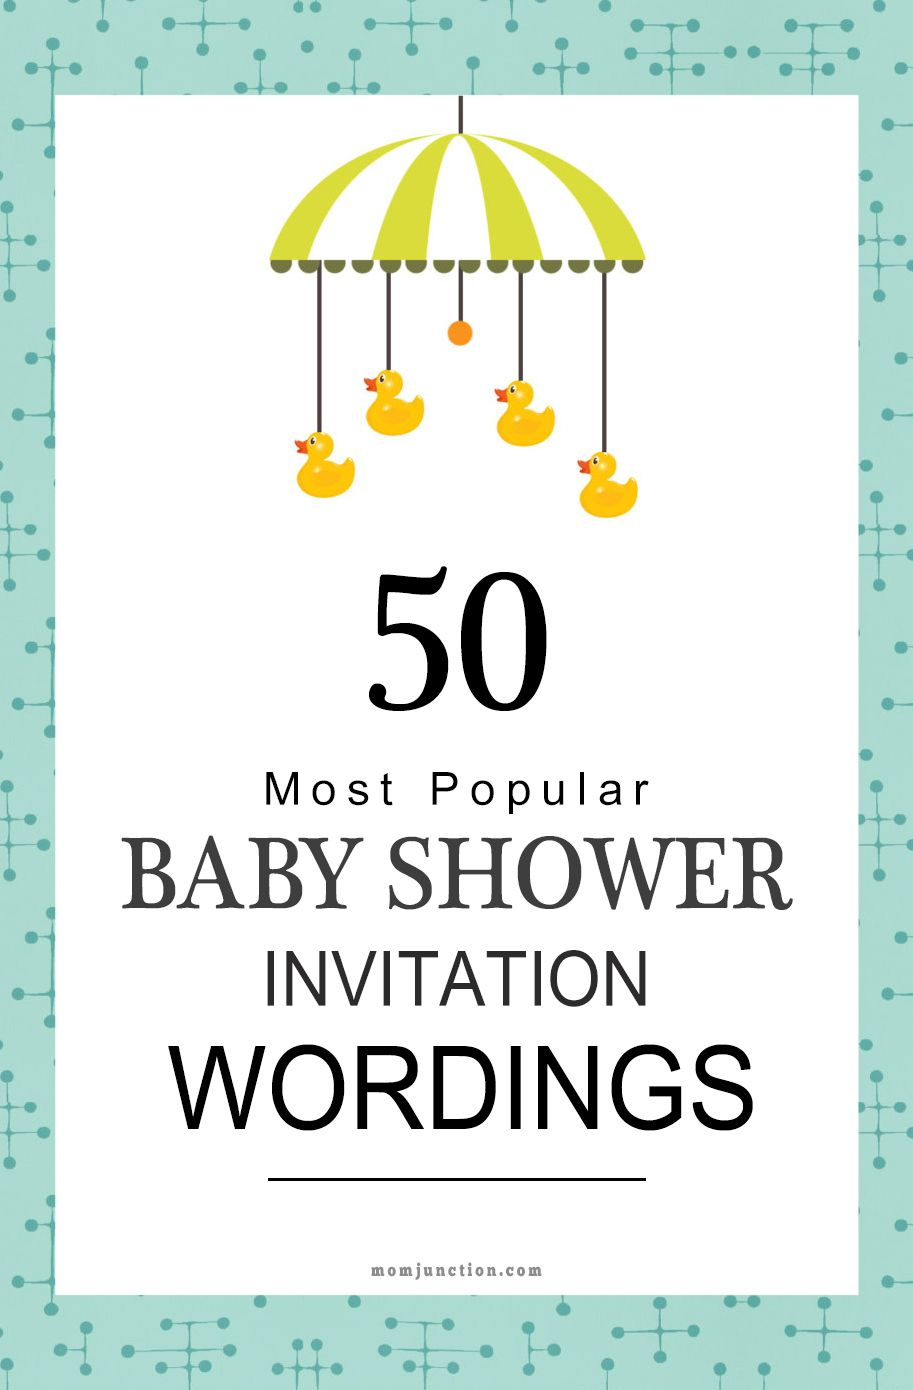 Full Size of Baby Shower:delightful Baby Shower Invitation Wording Picture Designs Arreglos Baby Shower Niño Books For Baby Shower Unique Baby Shower Favors Baby Shower Outfit Guest